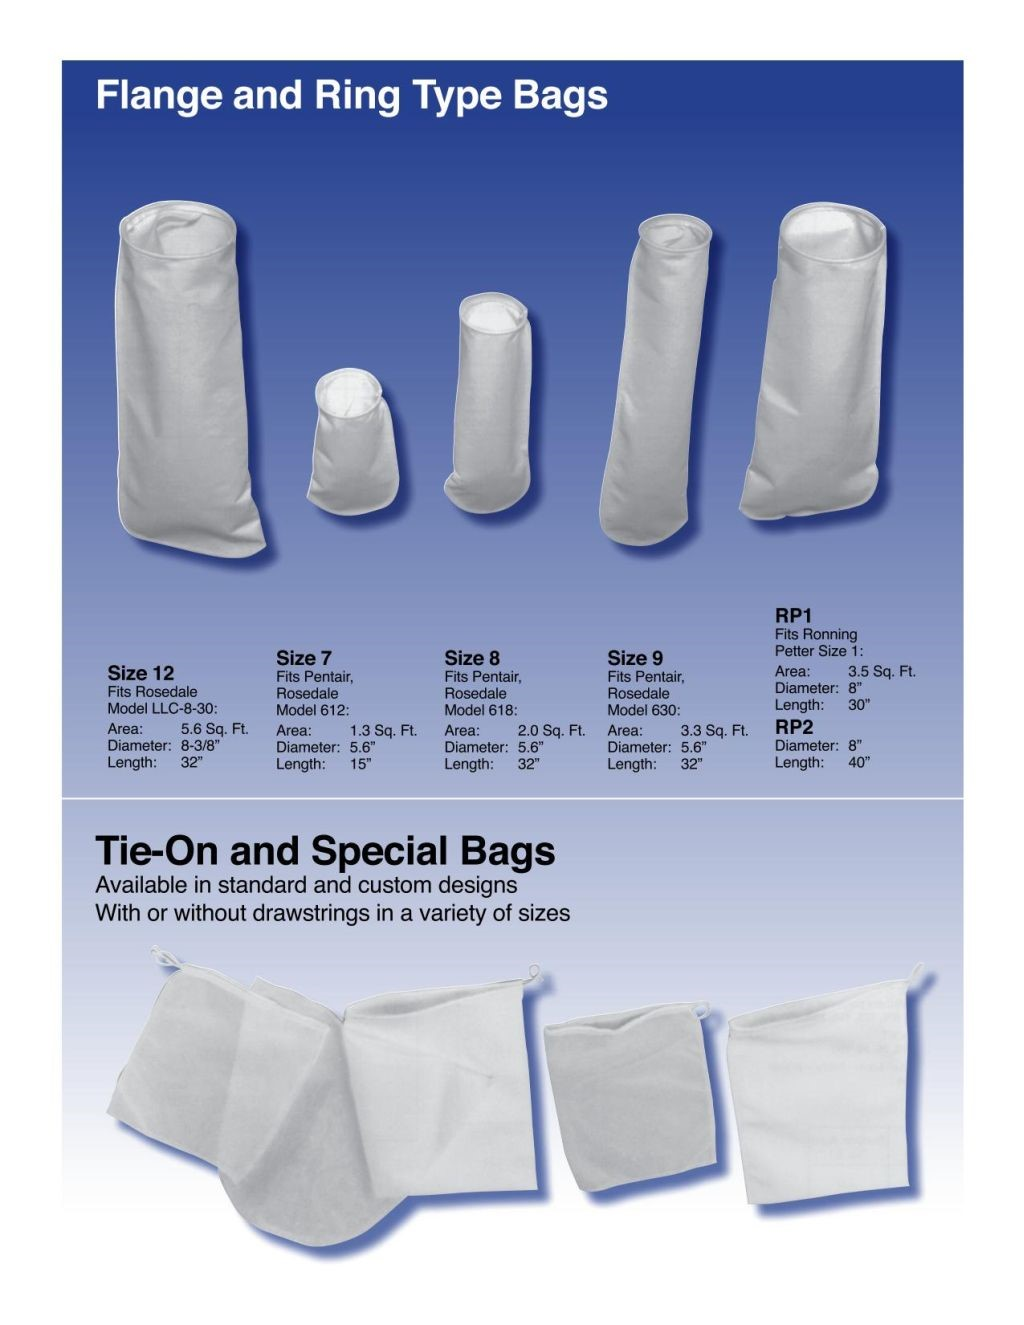 Filter Technology Flange and Ring Type Bags 2